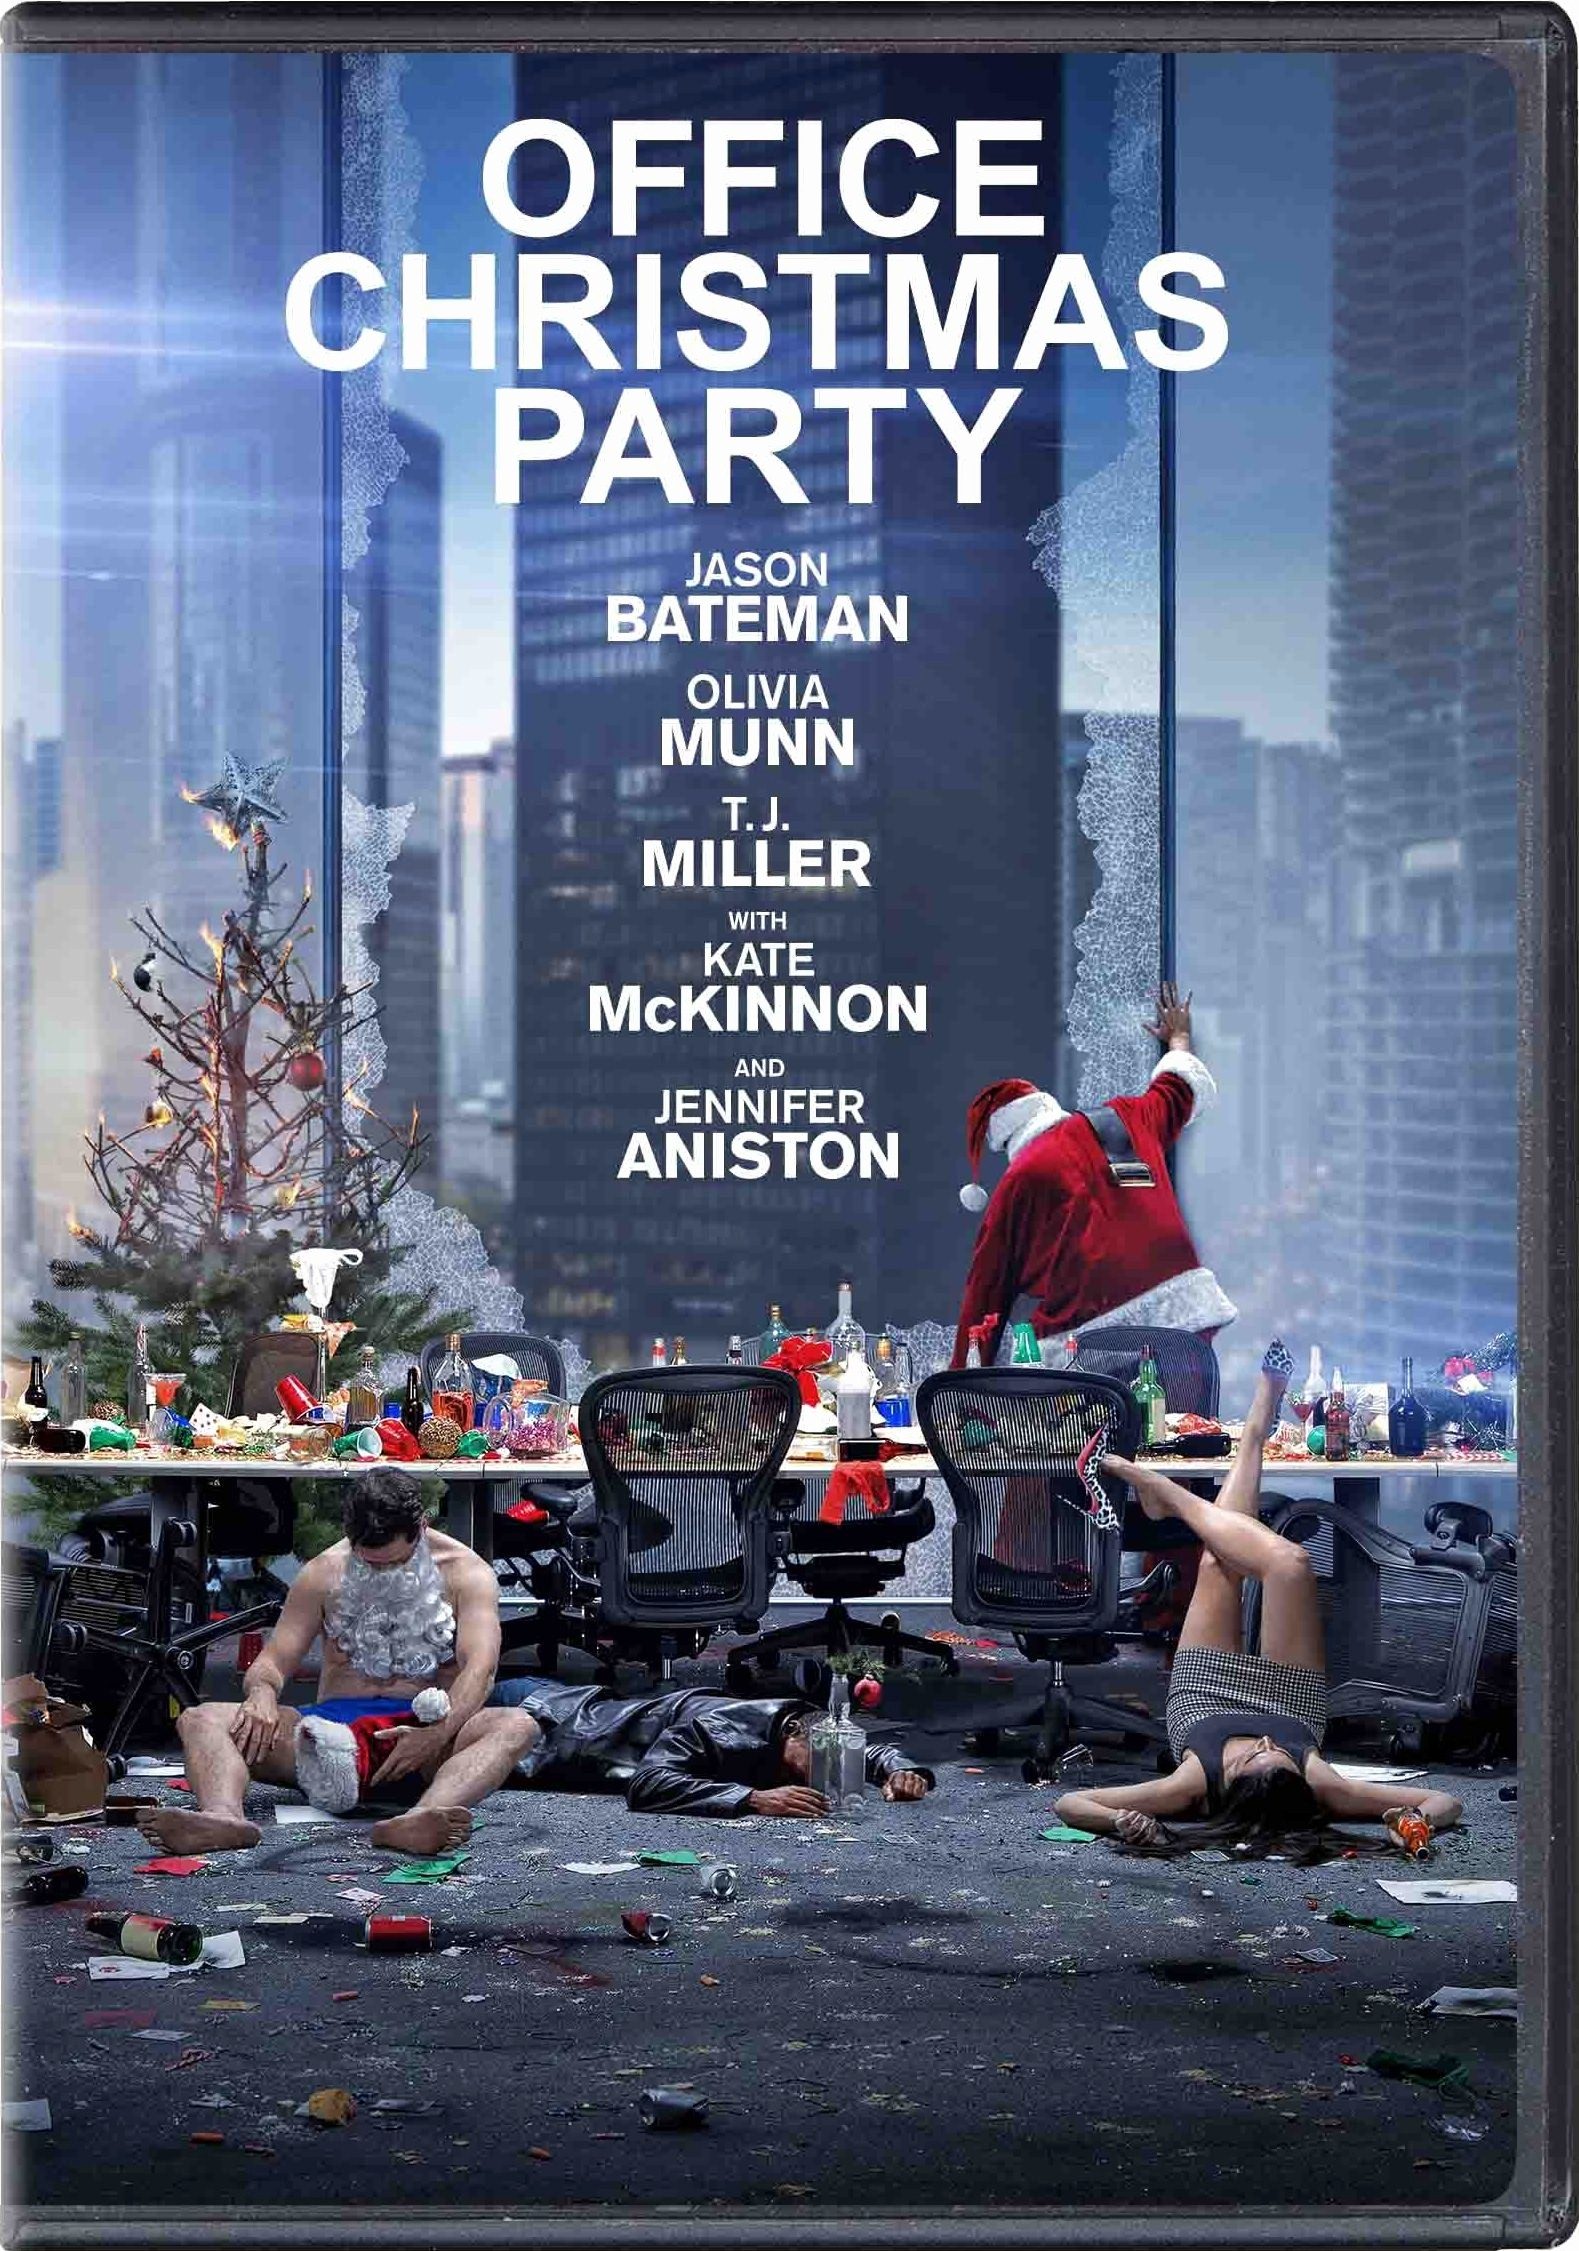 Office Christmas Party Free Download Lovely Fice Christmas Party Dvd Release Date April 4 2017